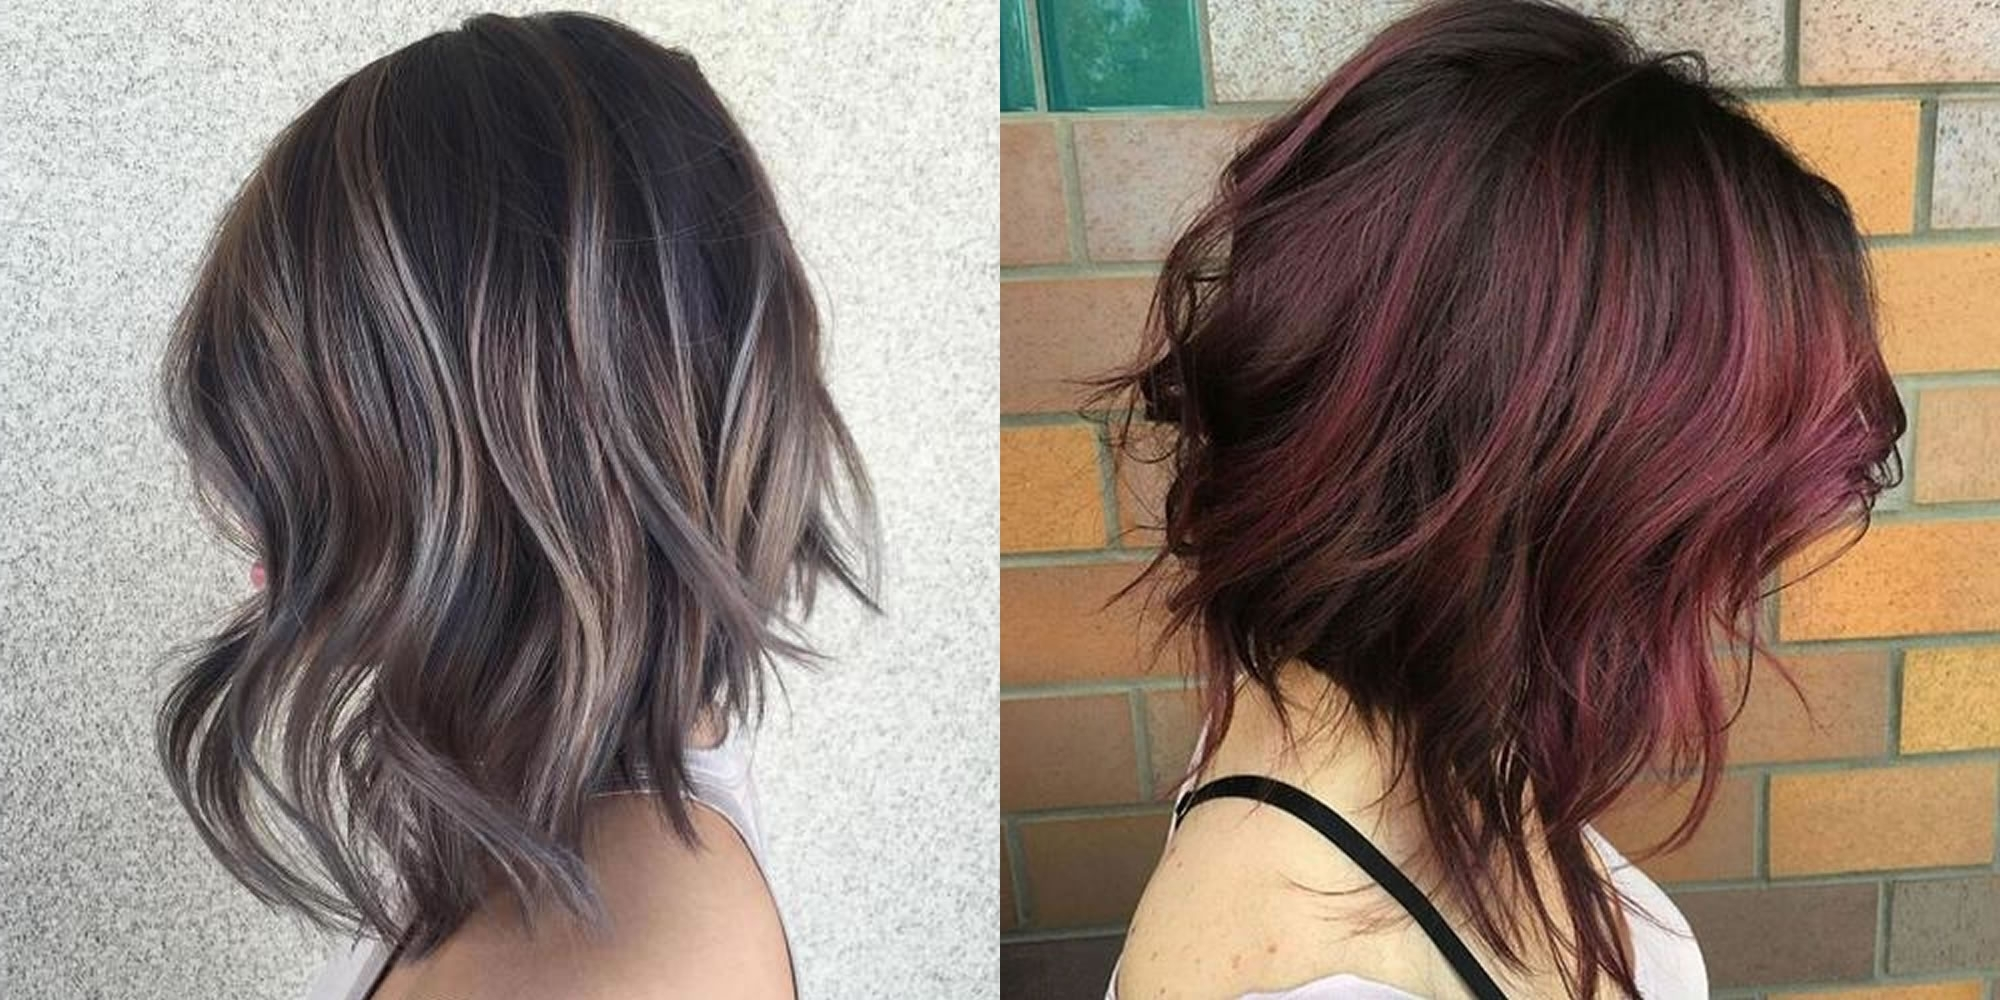 Popular Shaggy Pixie Hairstyles With Balayage Highlights Throughout The Best 50 Balayage Bob Hairstyles (Short+Long) & Highlights – Page (View 16 of 20)